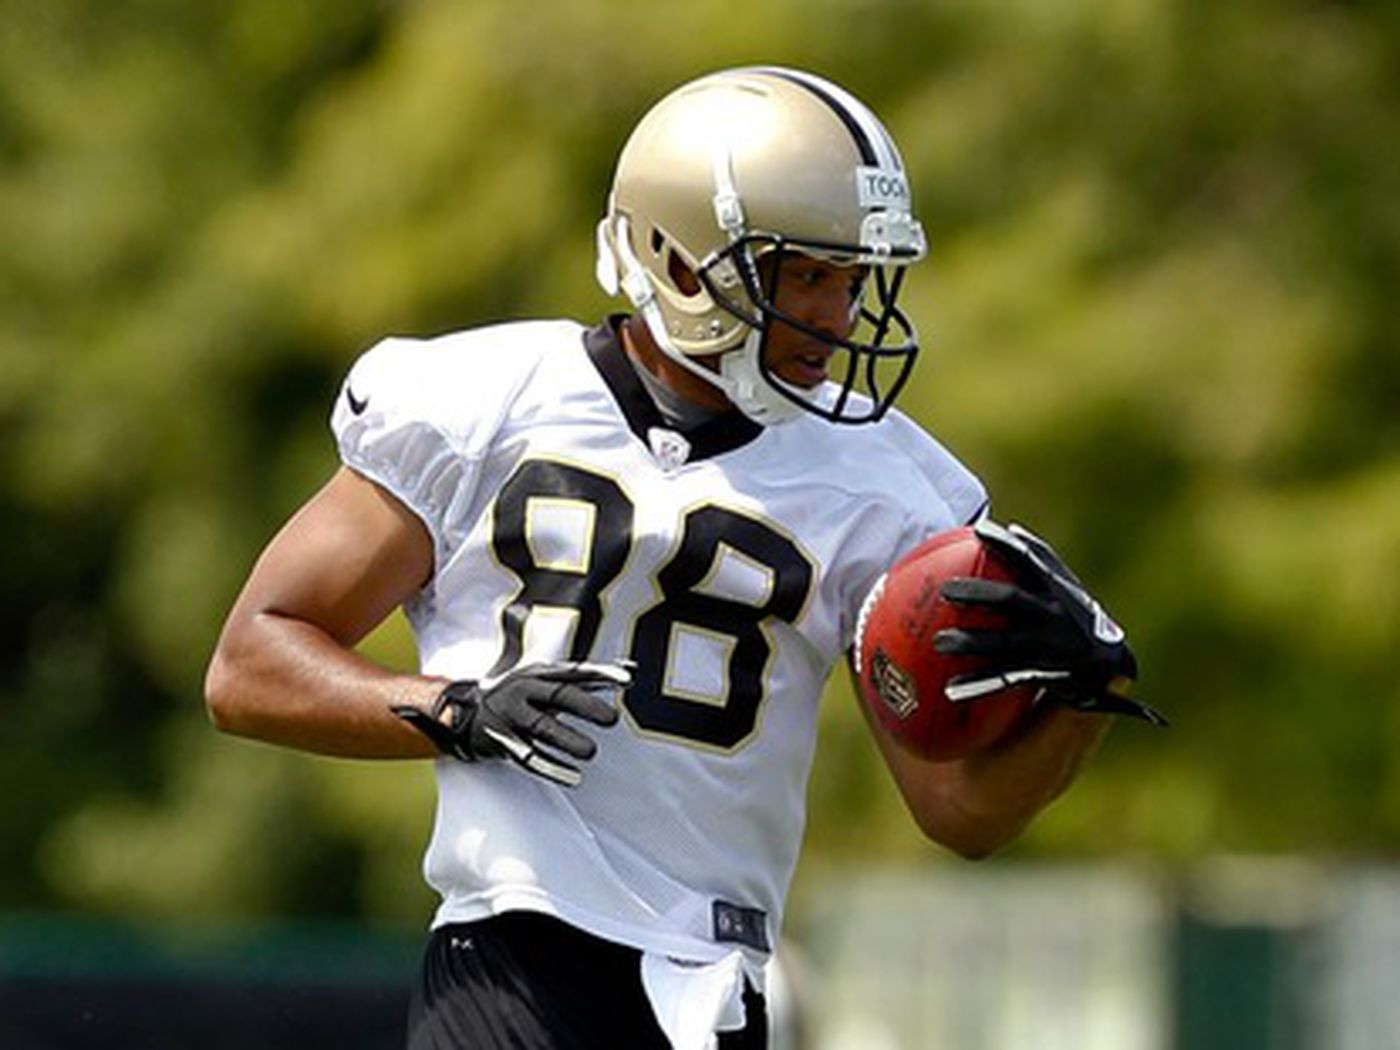 New Orleans Saints Roster 2013: Wide Receiver/Tight End